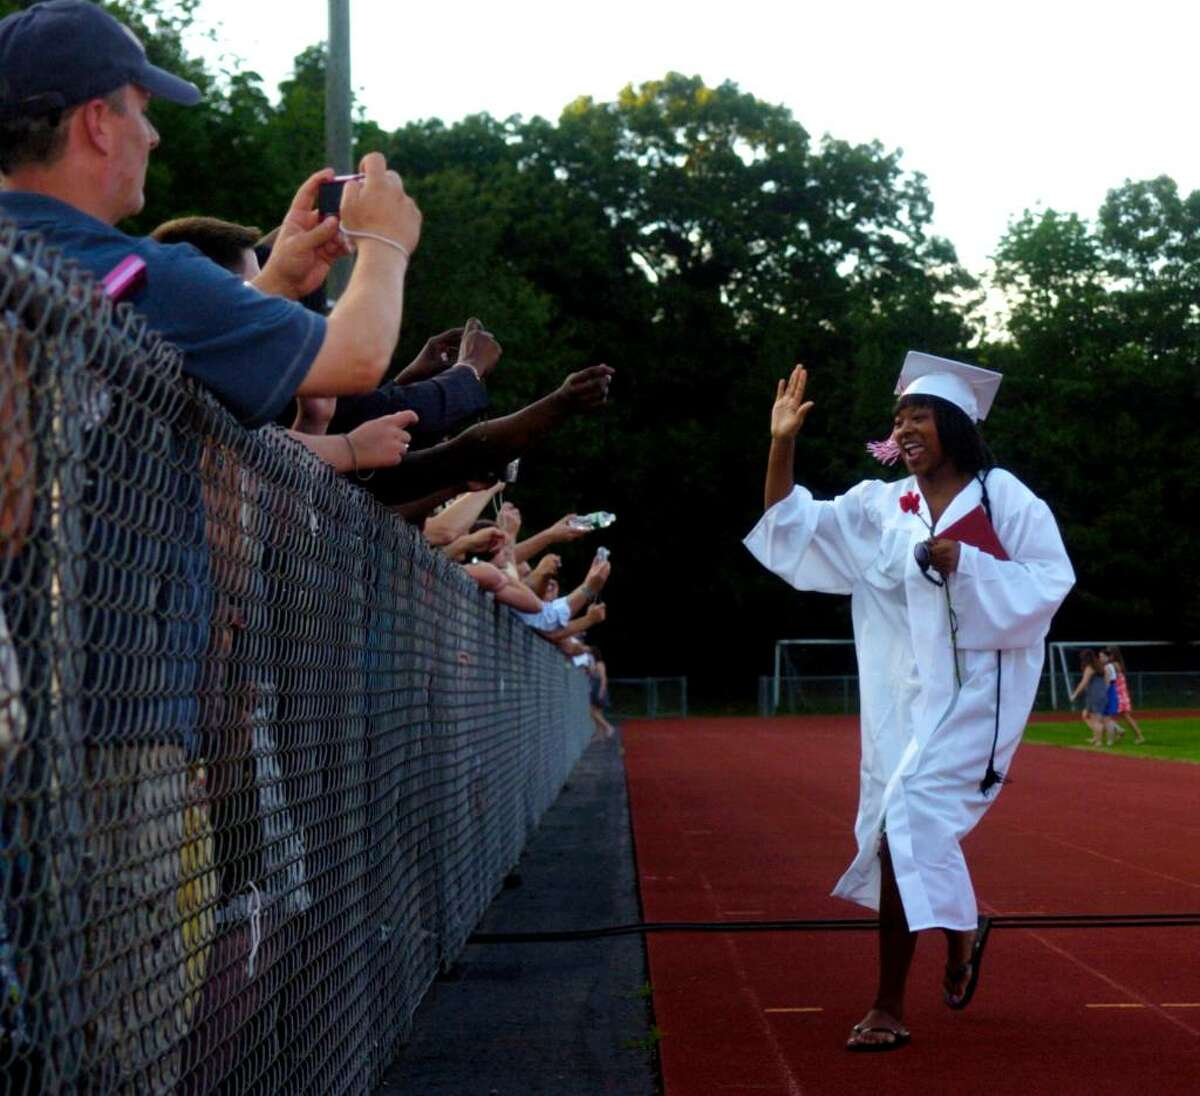 Antoinette Kinard gets a high-five from the crowd after graduating from Masuk High School during a ceremony at the school Wednesday, June 23, 2010.